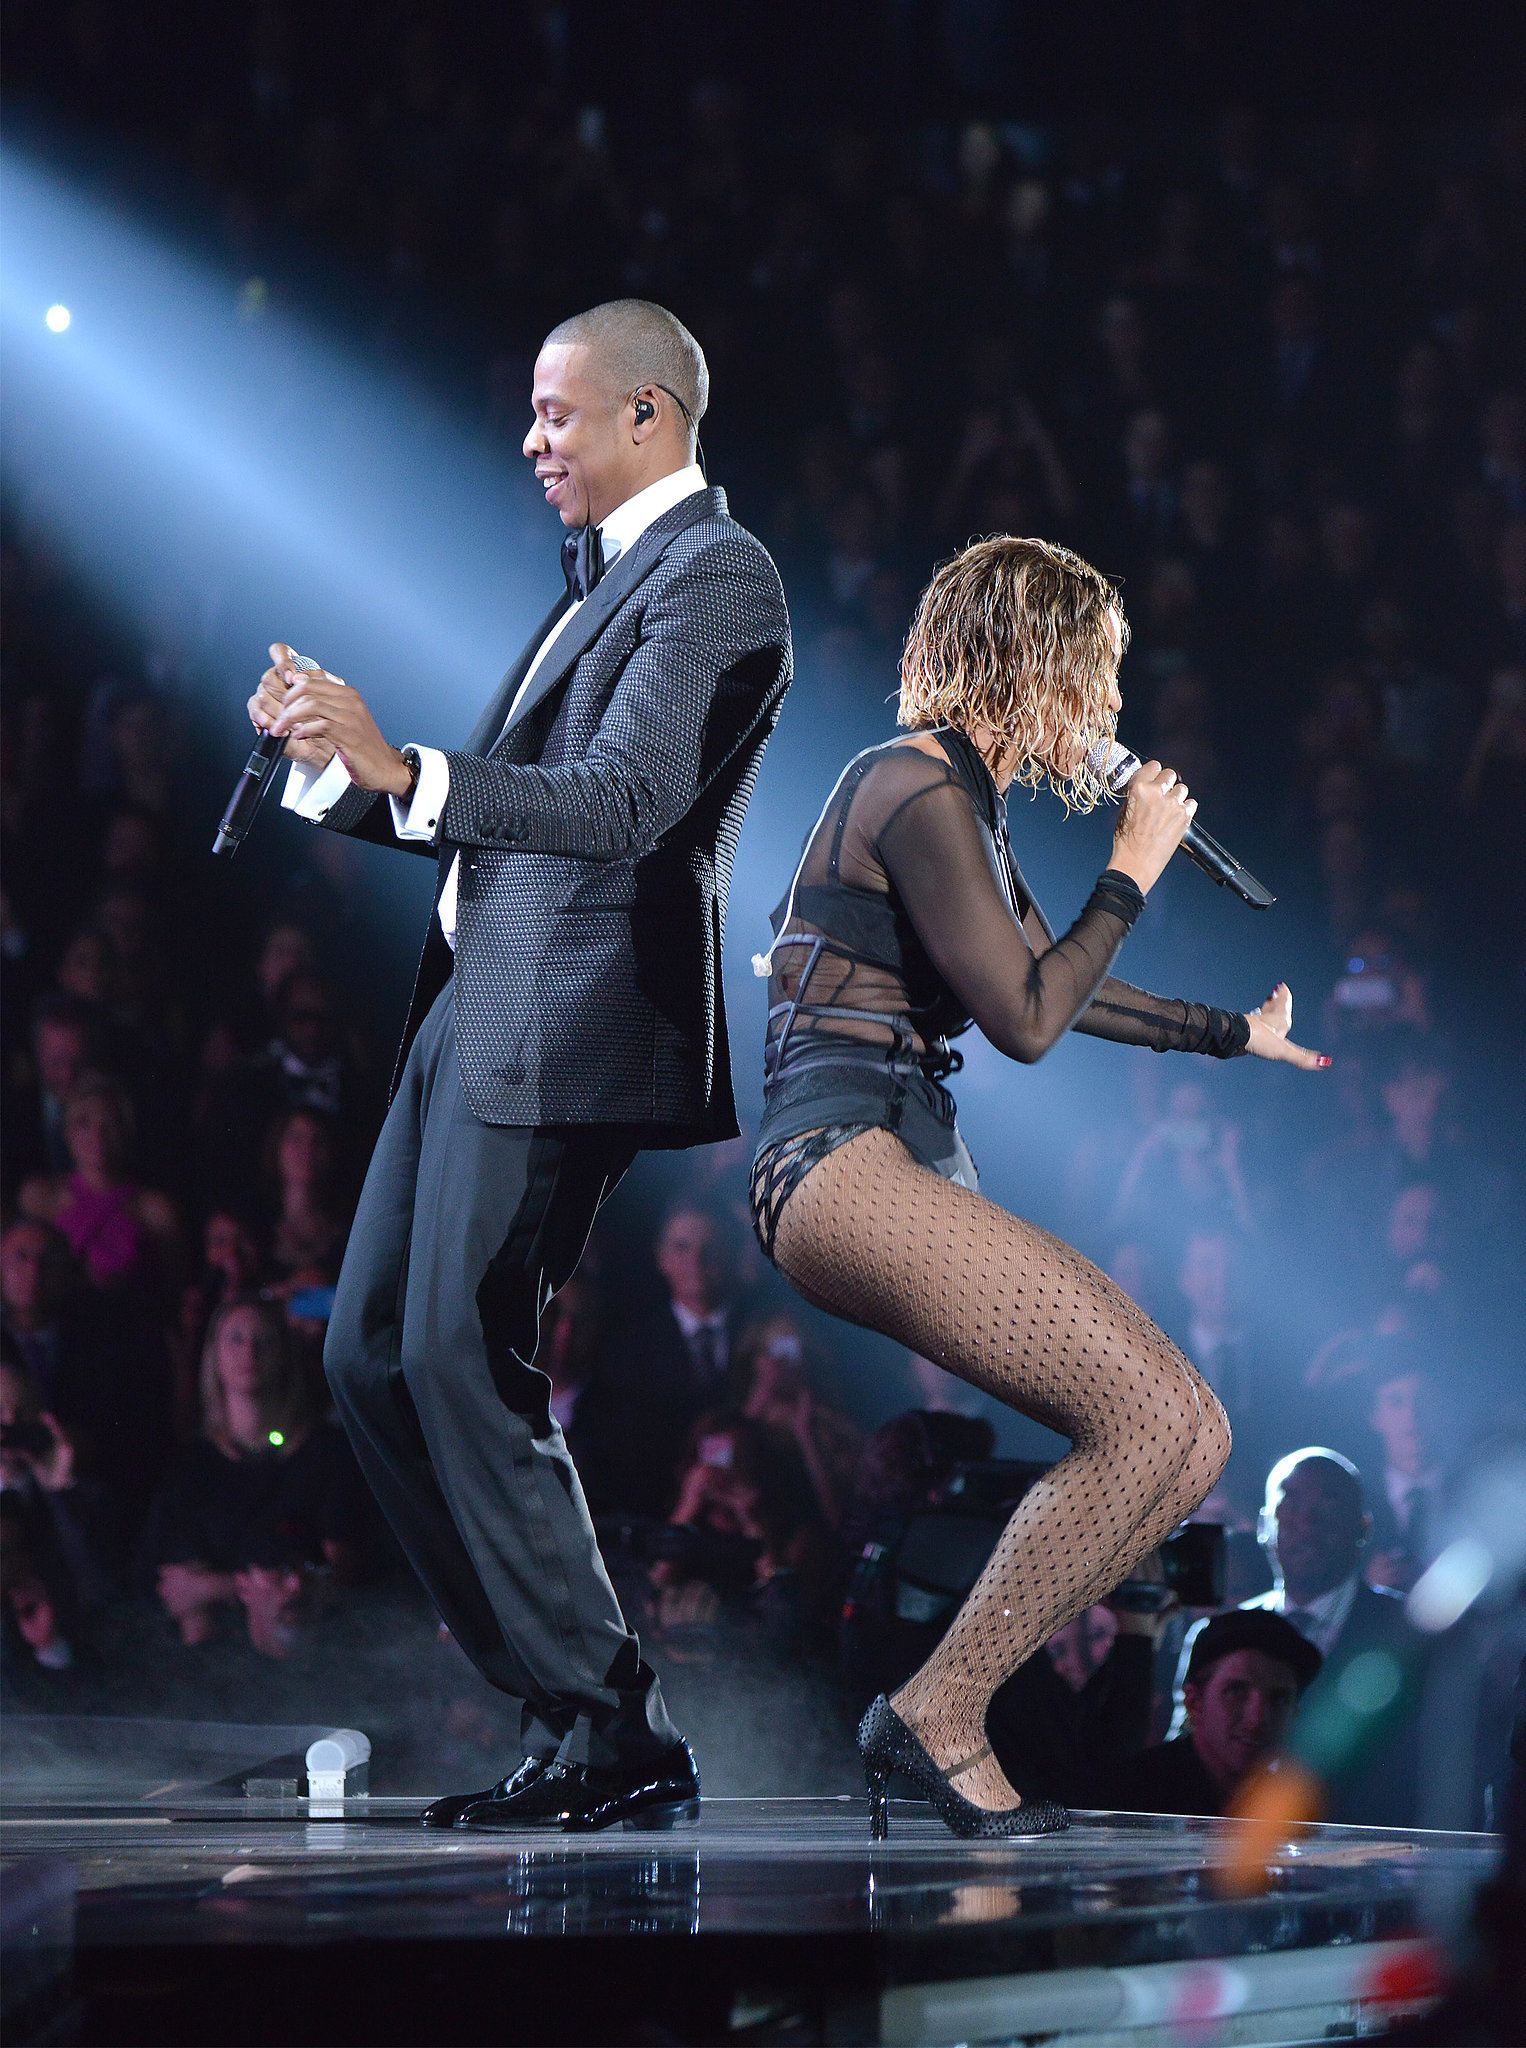 Jay Z And Beyonce Performing Beyonc and jay z got downJay Z And Beyonce Performing 2013